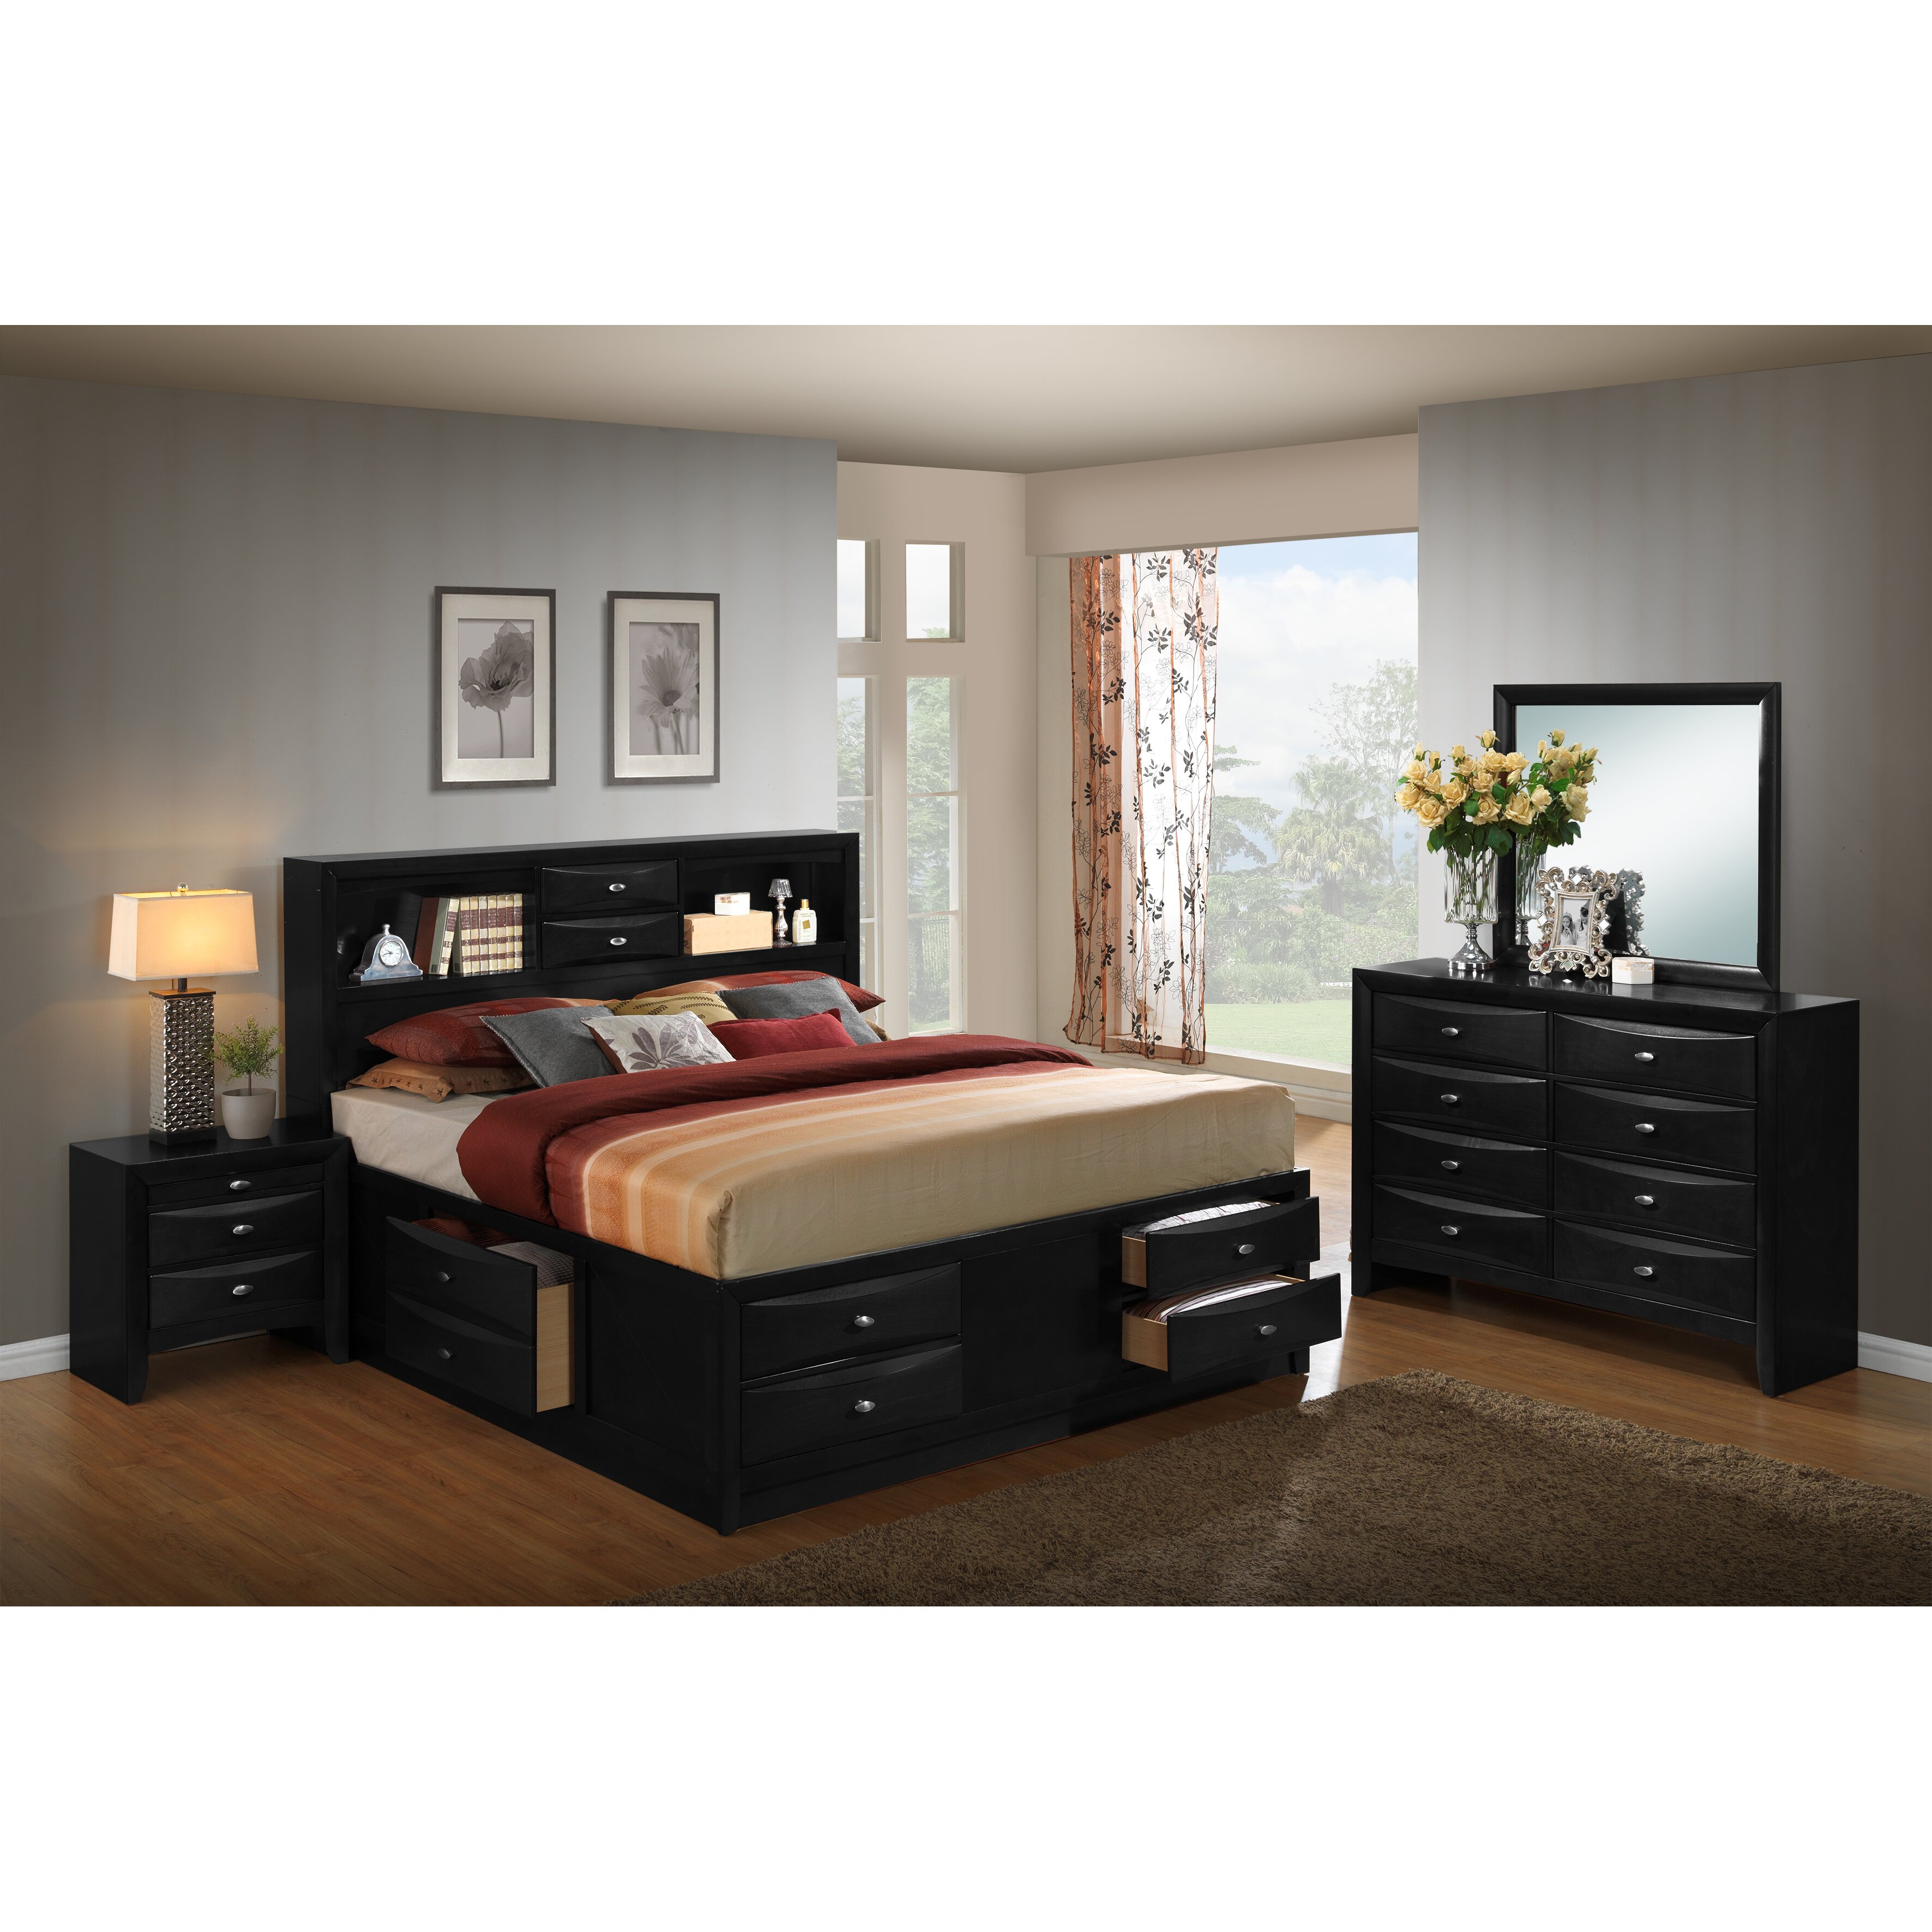 Roundhill Furniture Blemerey Platform 4 Piece Bedroom Set